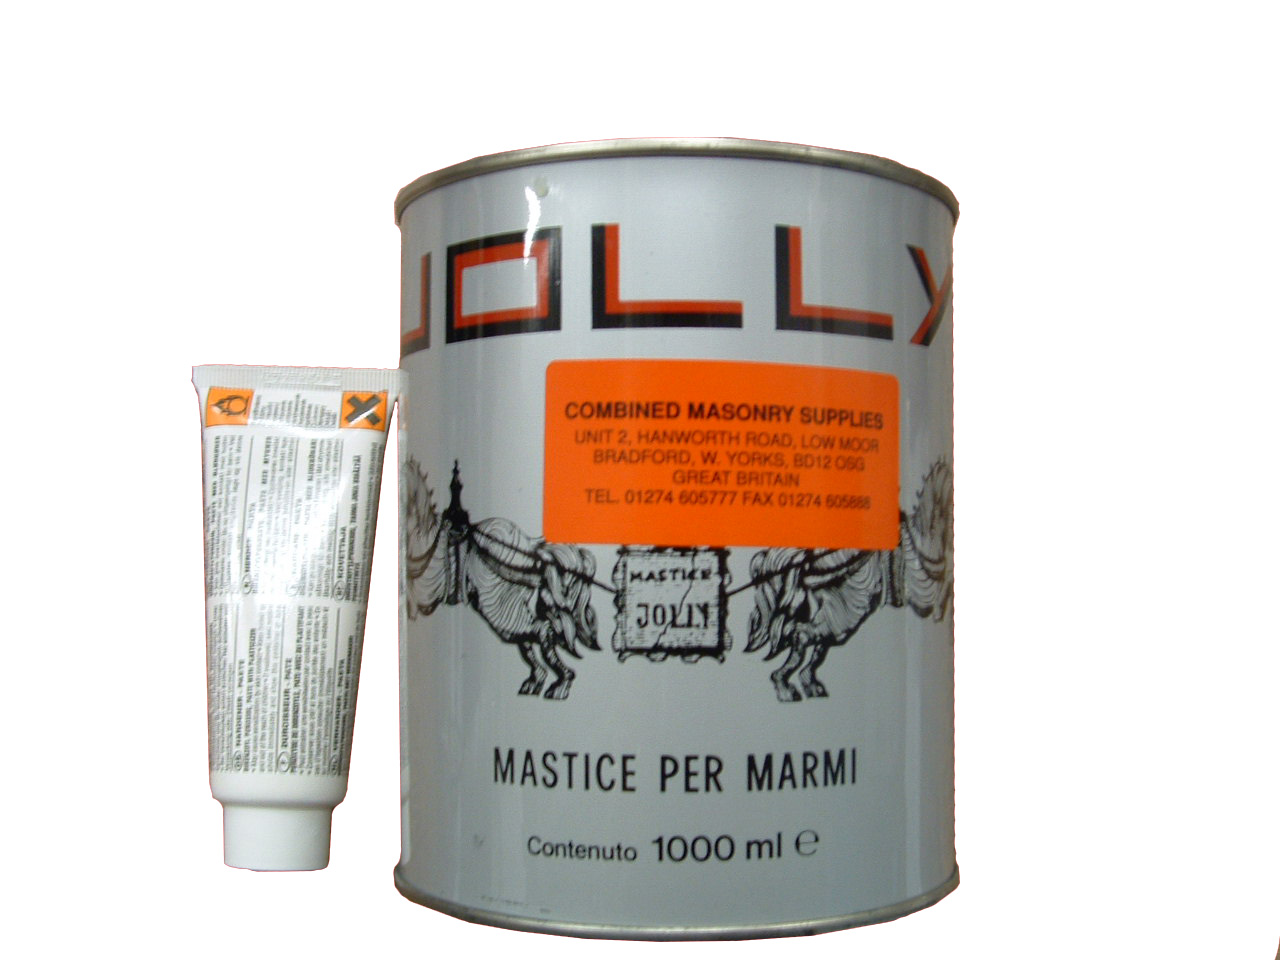 Jolly Mastic Adhesive Filler For Granite Marble Amp Stone